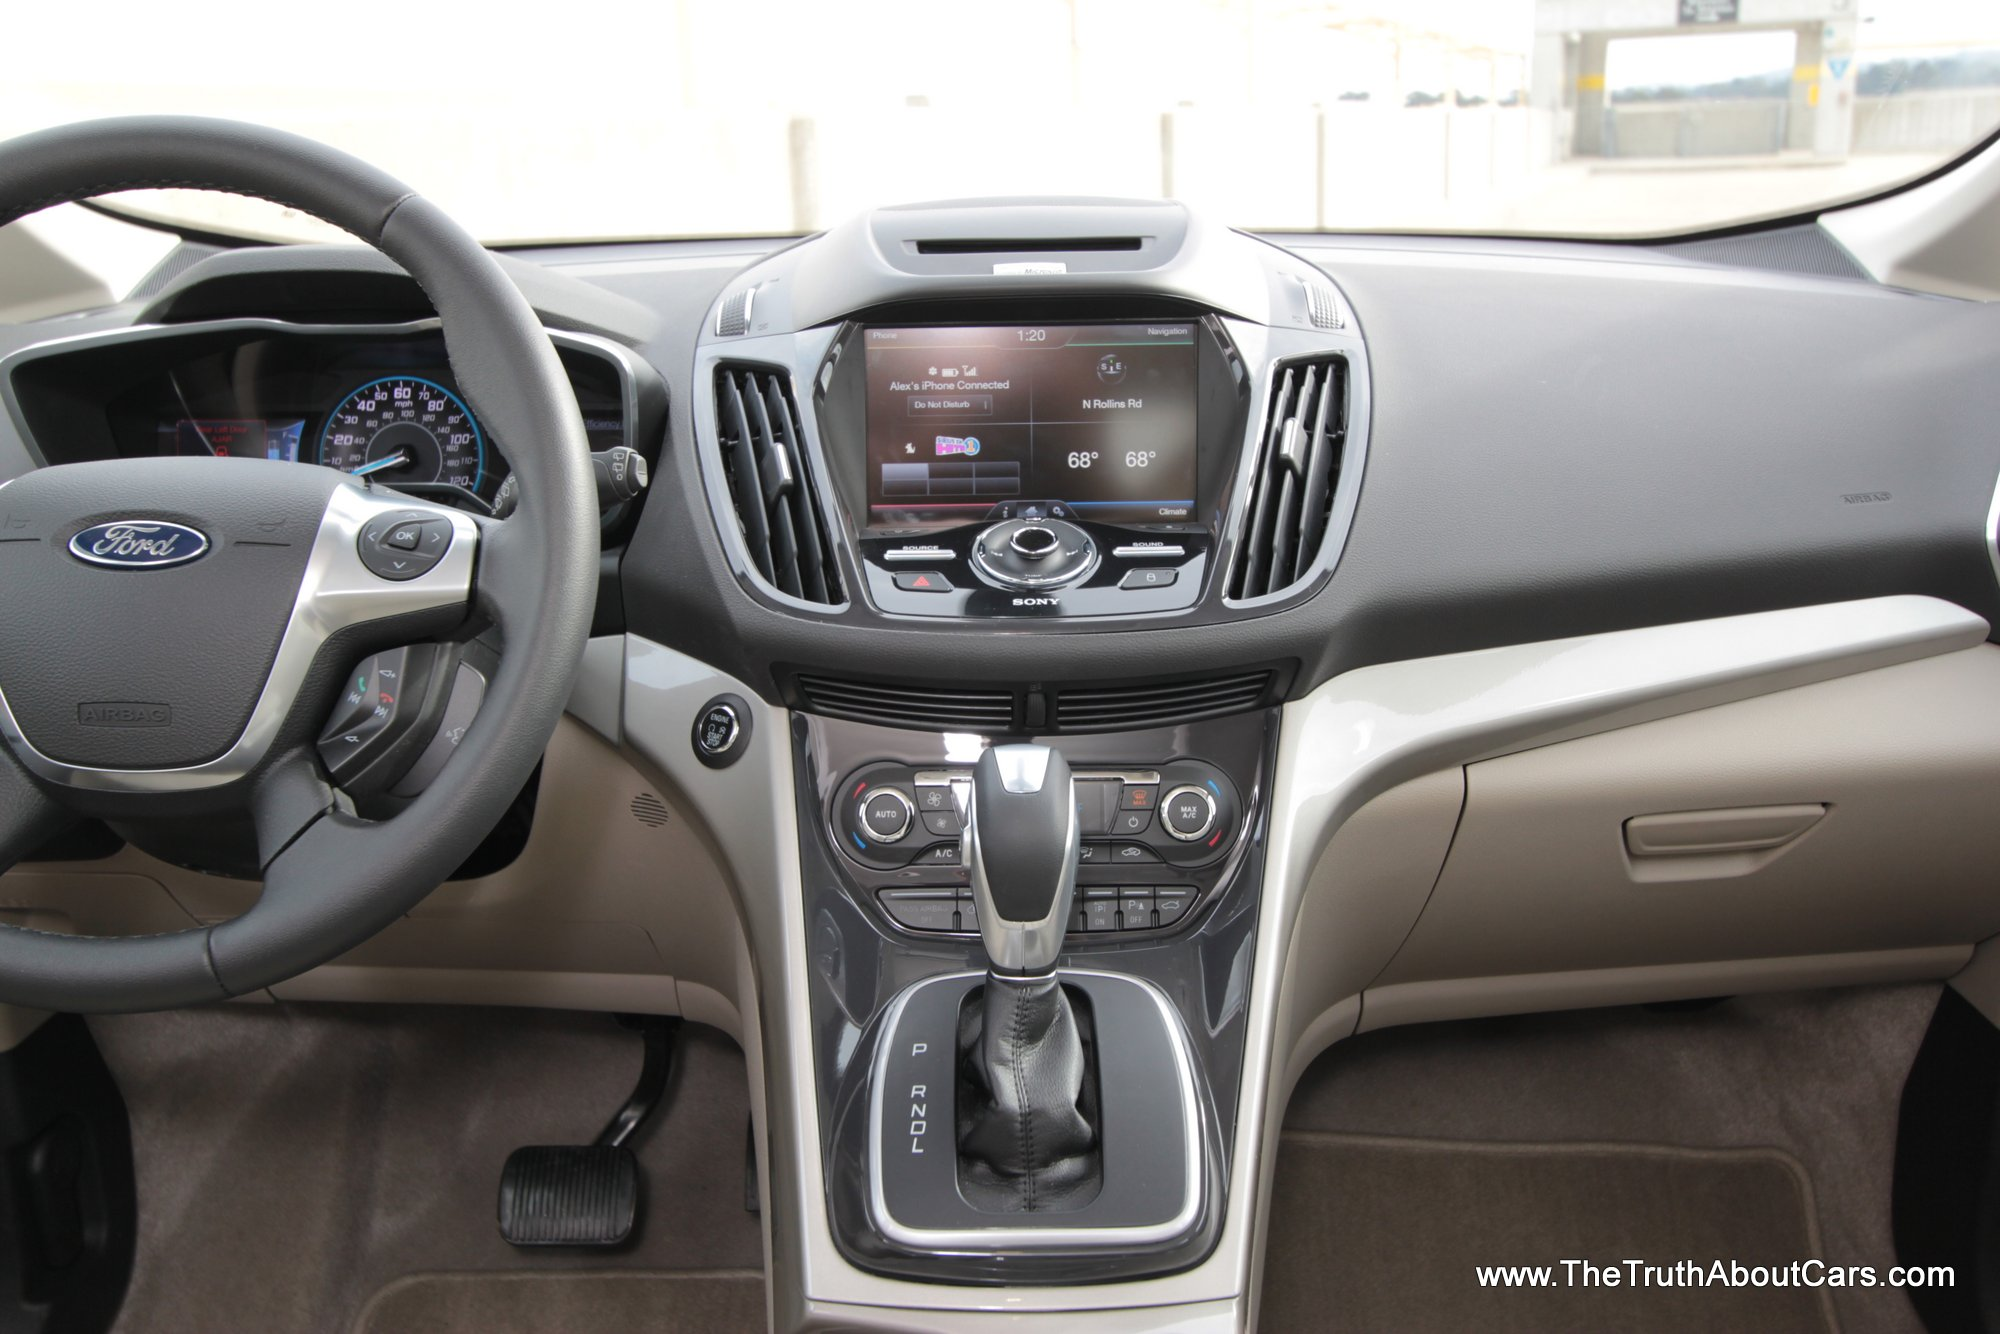 2013 ford c max energi plug in hybrid interior rear seats picture courtesy of alex l dykes. Black Bedroom Furniture Sets. Home Design Ideas